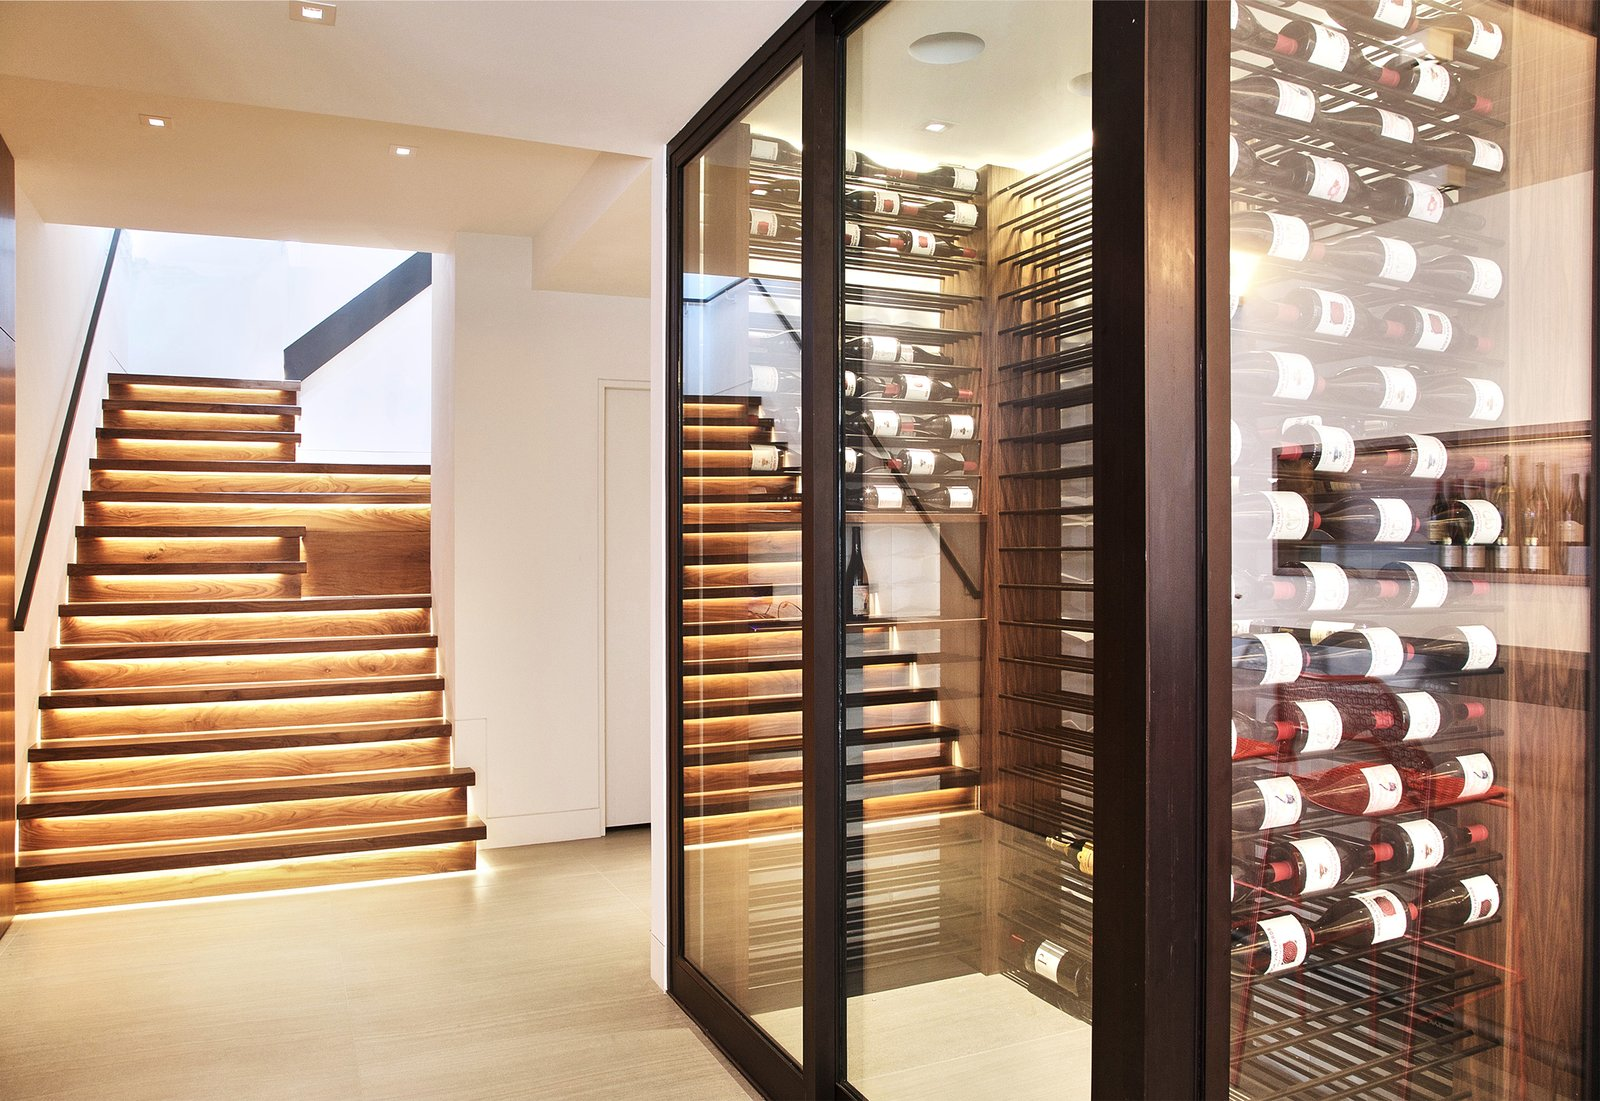 Stairs + Wine Room Tagged: Staircase, Wood Tread, Wood Railing, and Glass Railing.  Lyon Residence by Diego Pacheco Design Practice